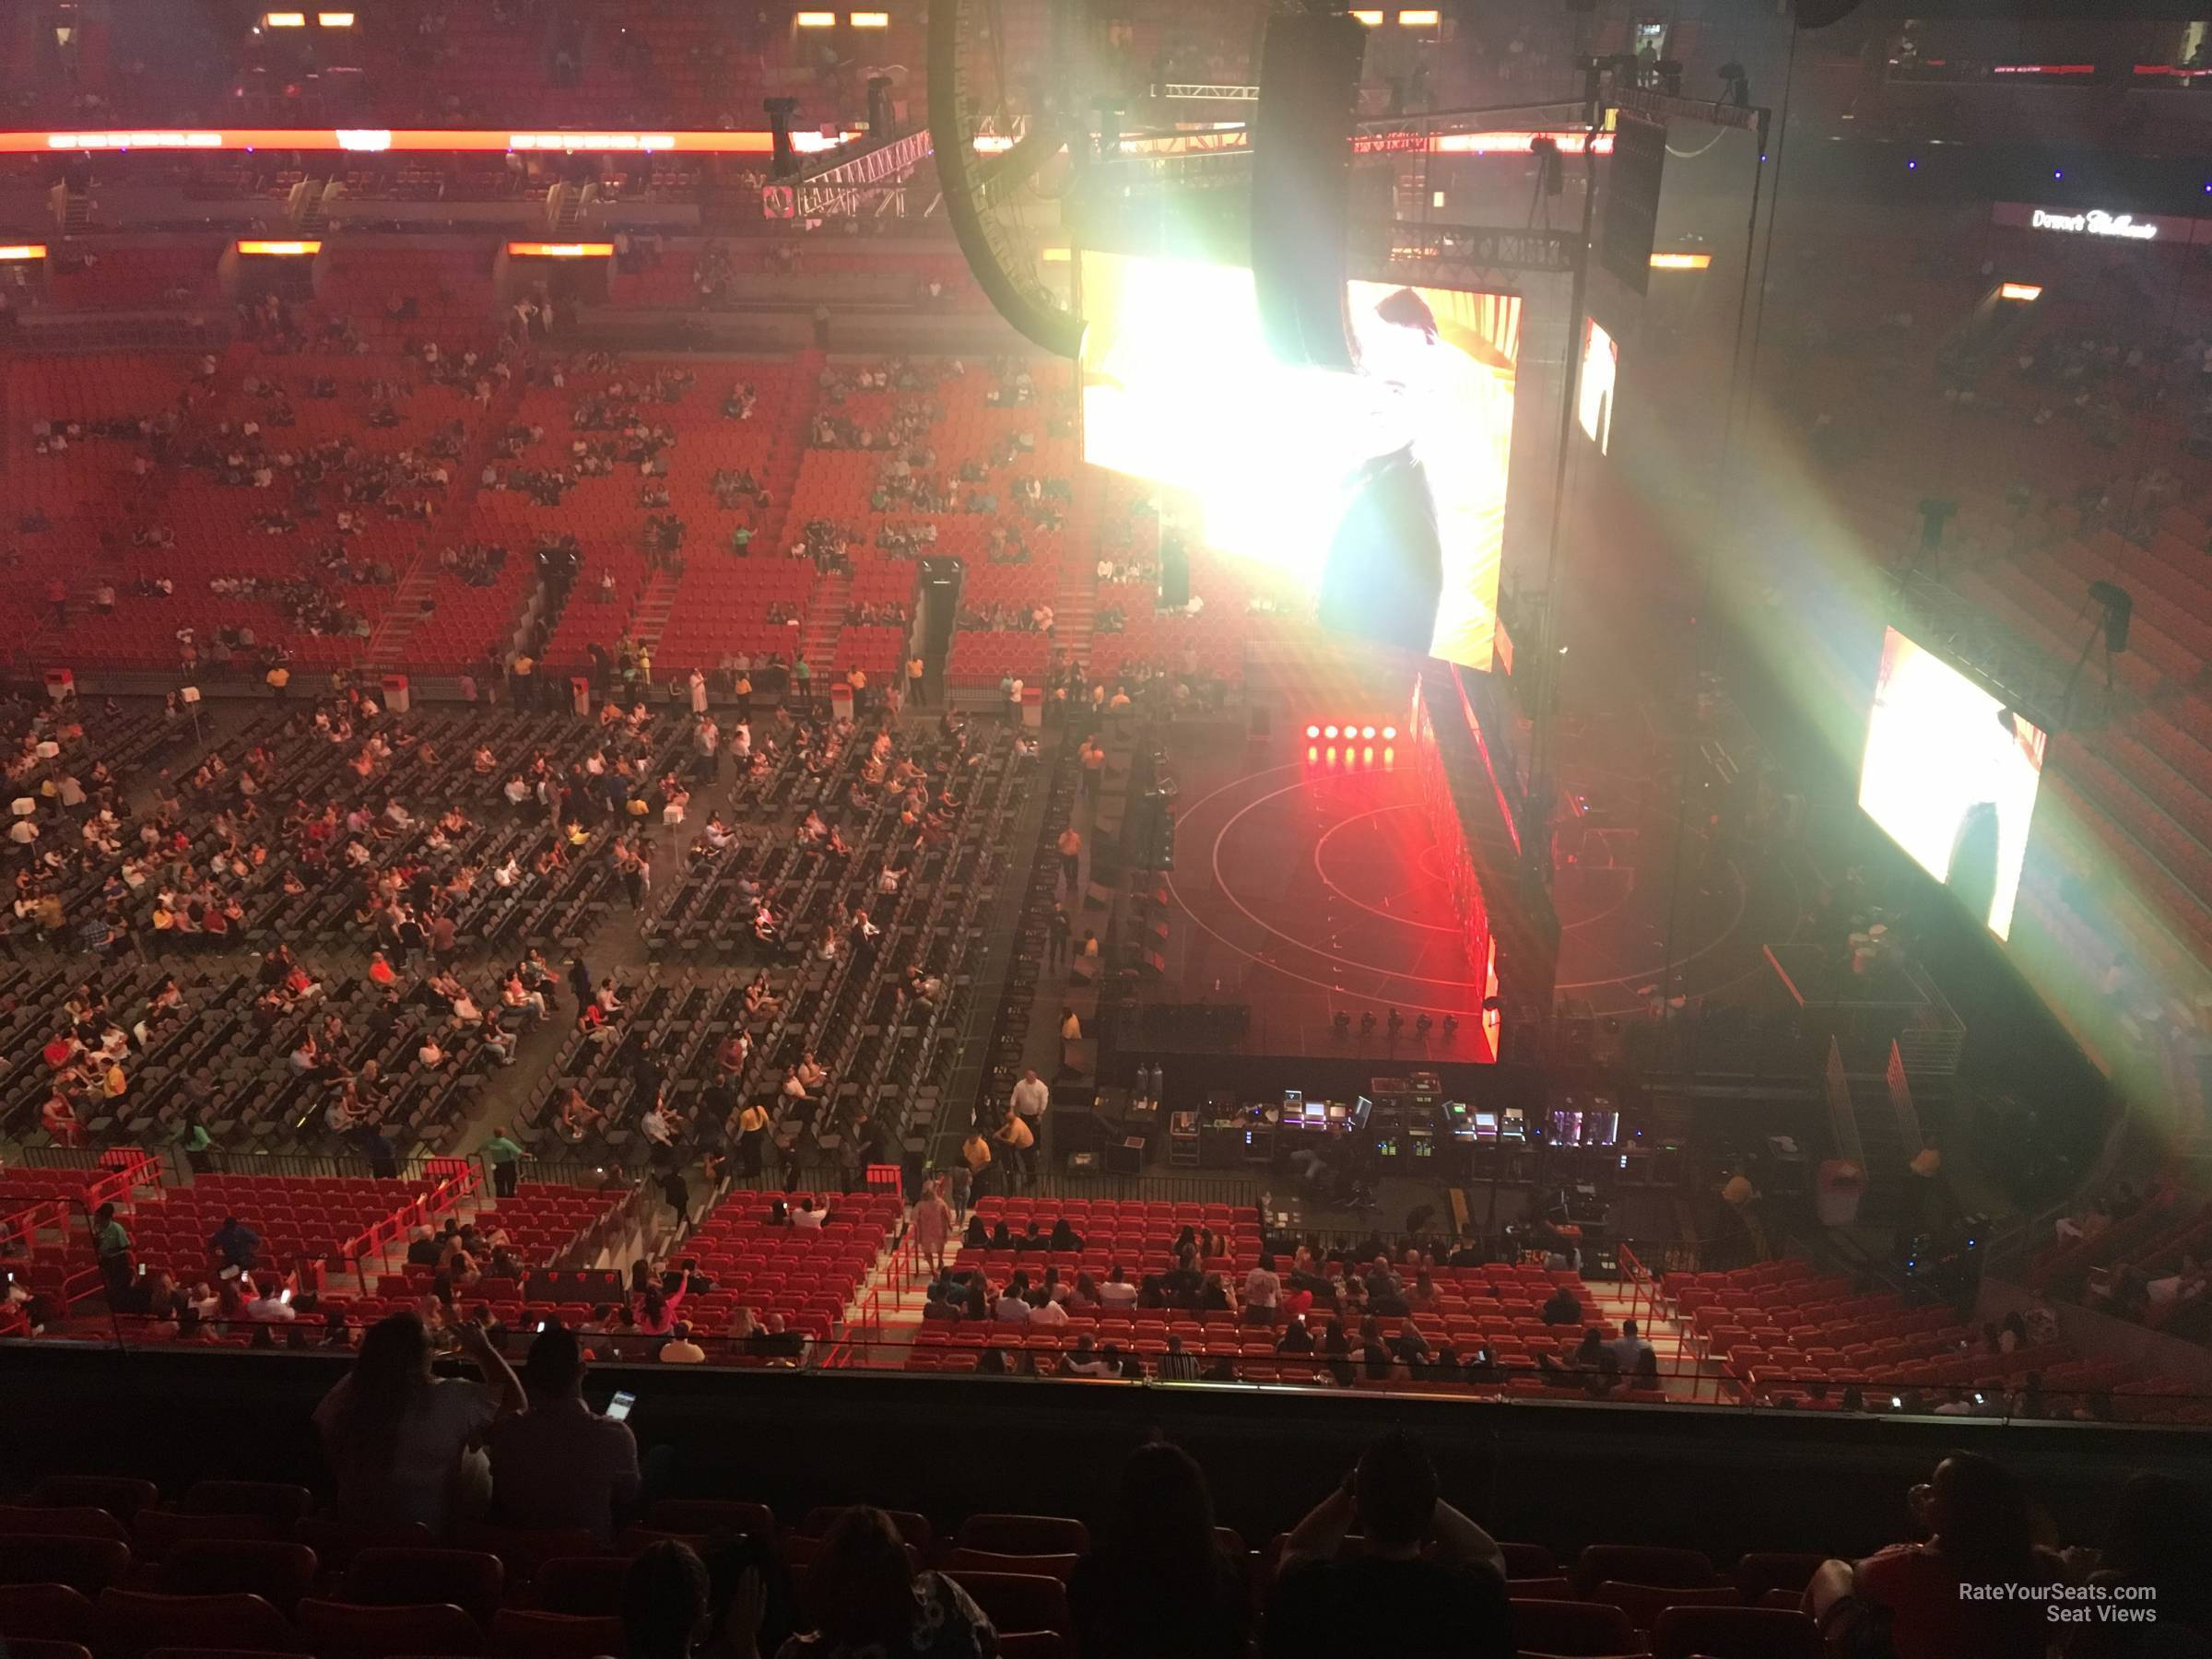 Concert Seat View for AmericanAirlines Arena Section 307, Row 8